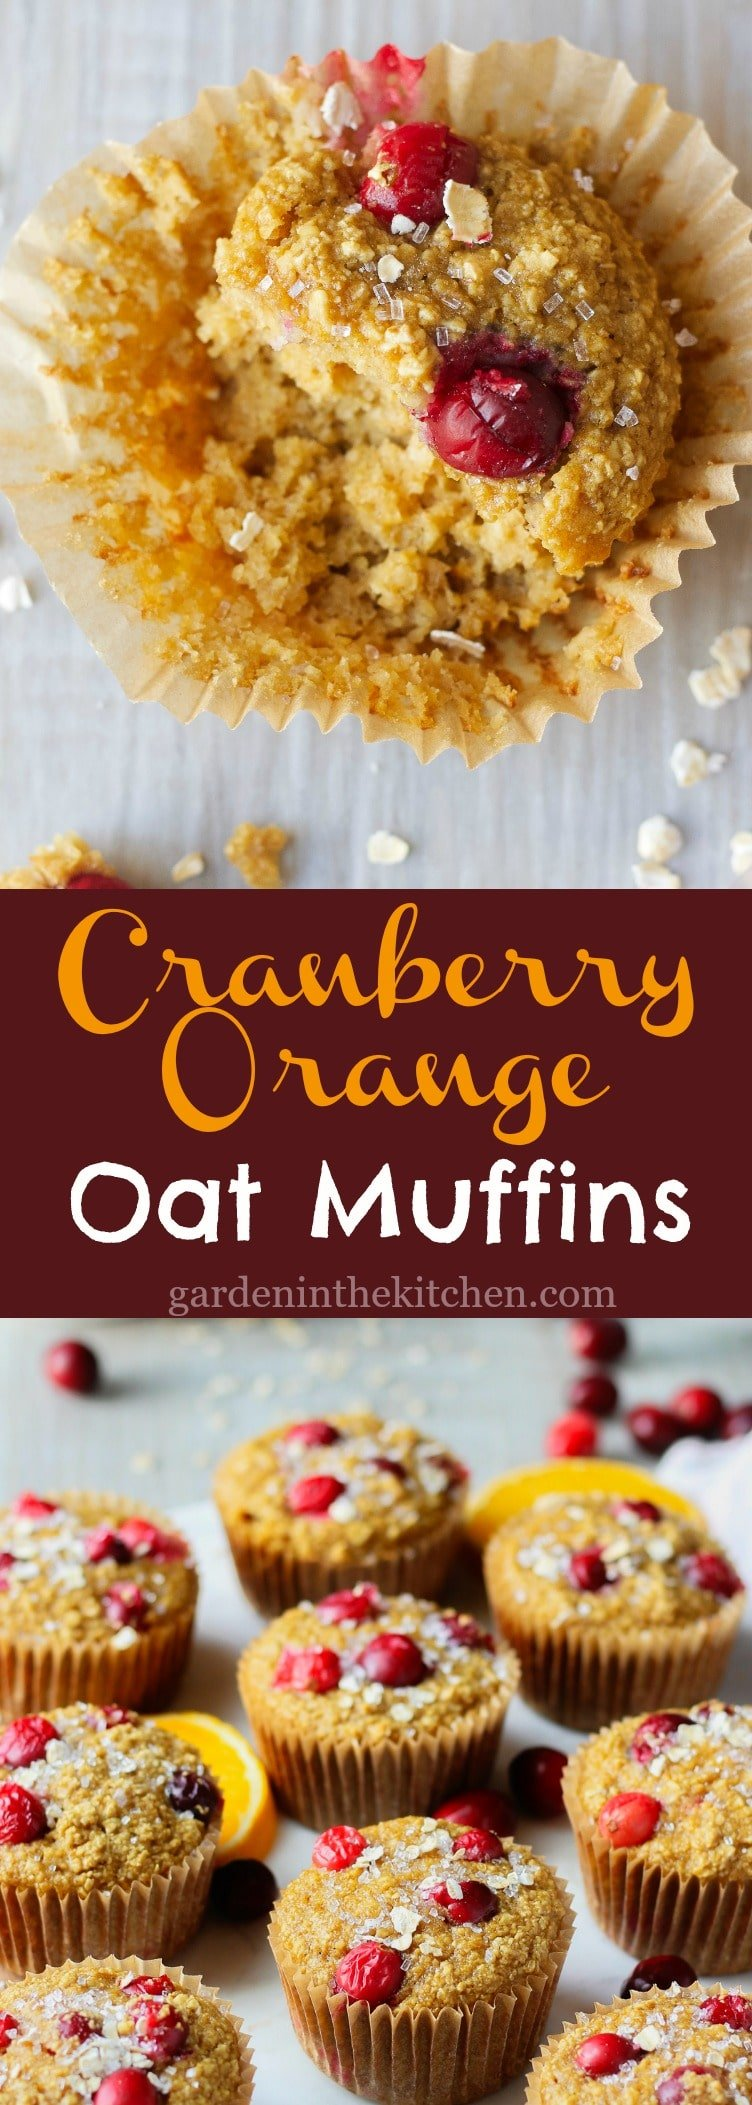 Cranberry Orange Oat Muffins